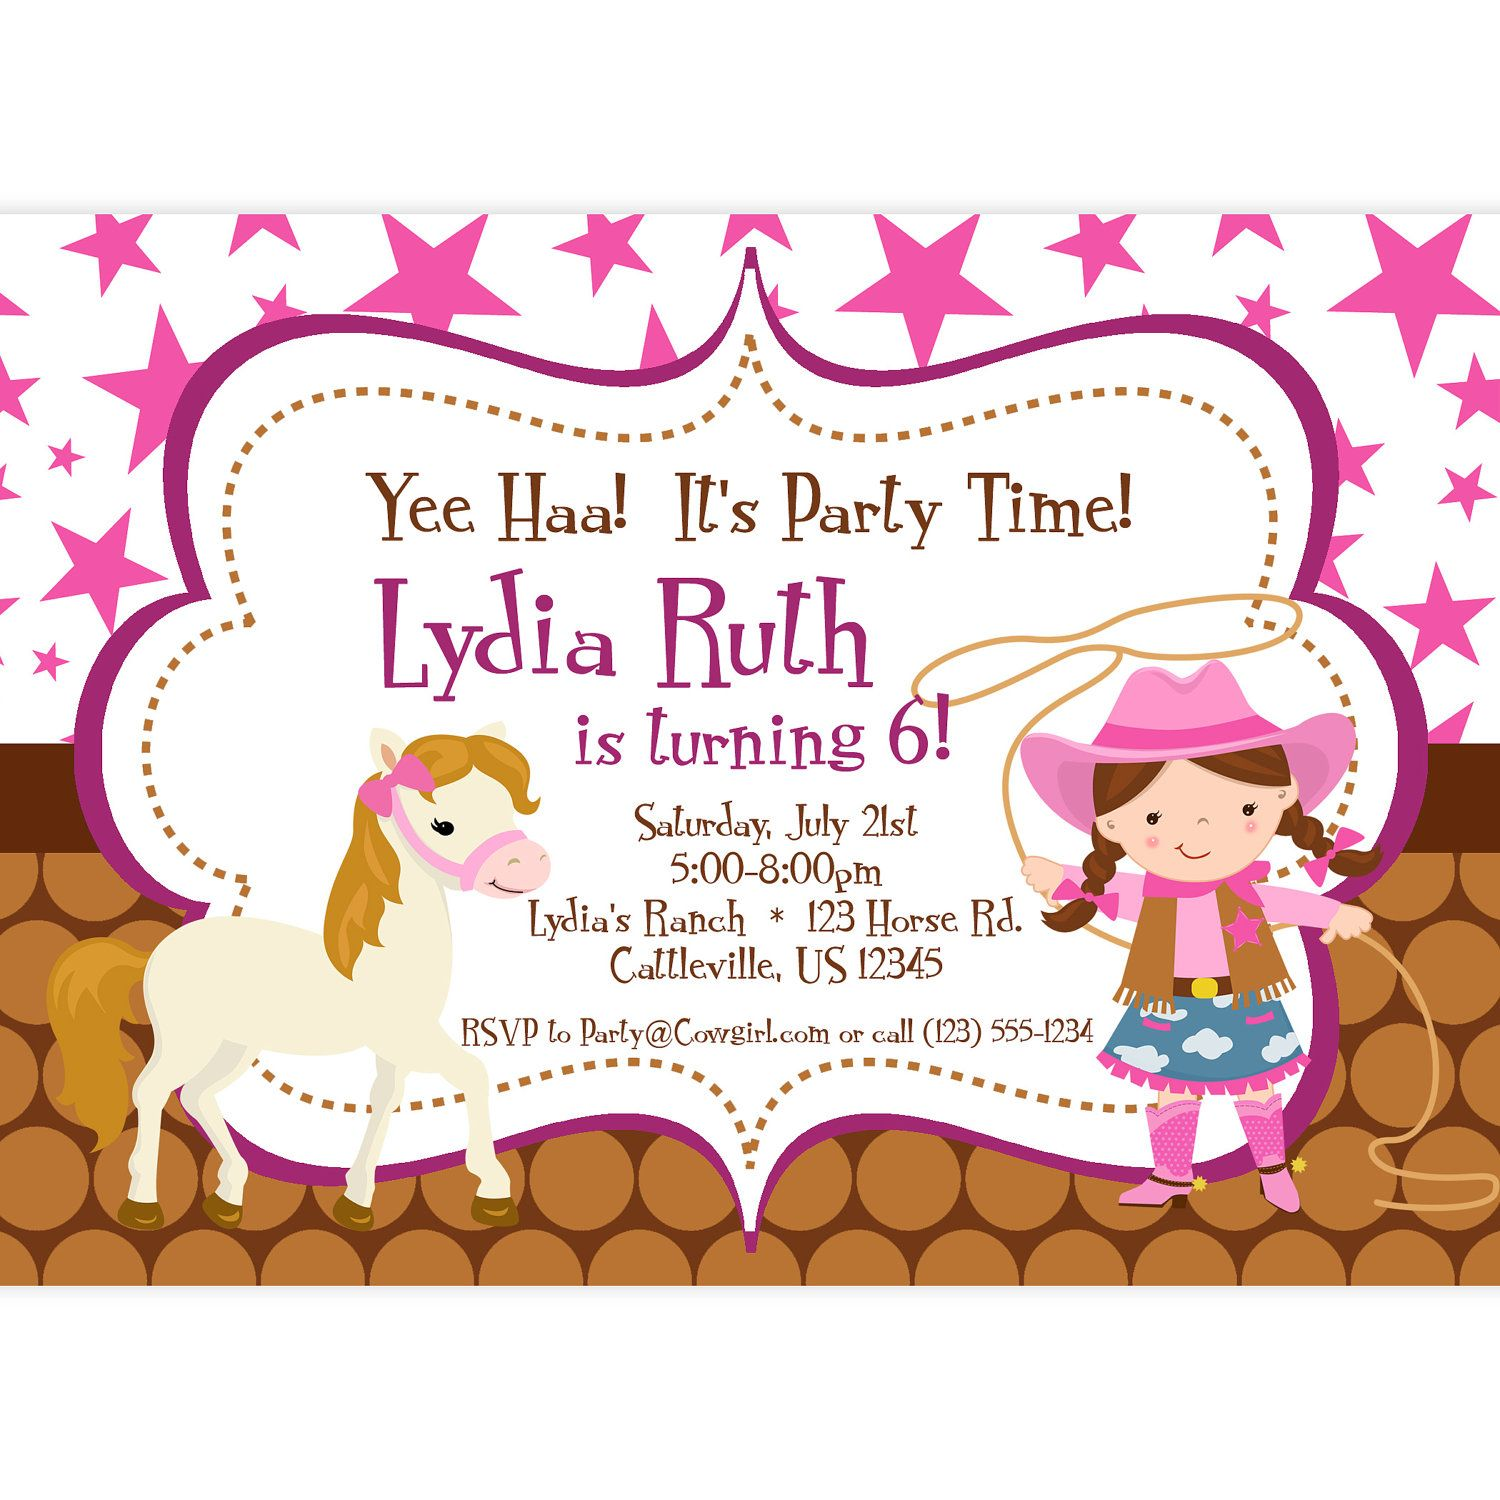 free printable cowgirl birthday party invitations ; d84f05281a241571d6d33876cd0b8b4e